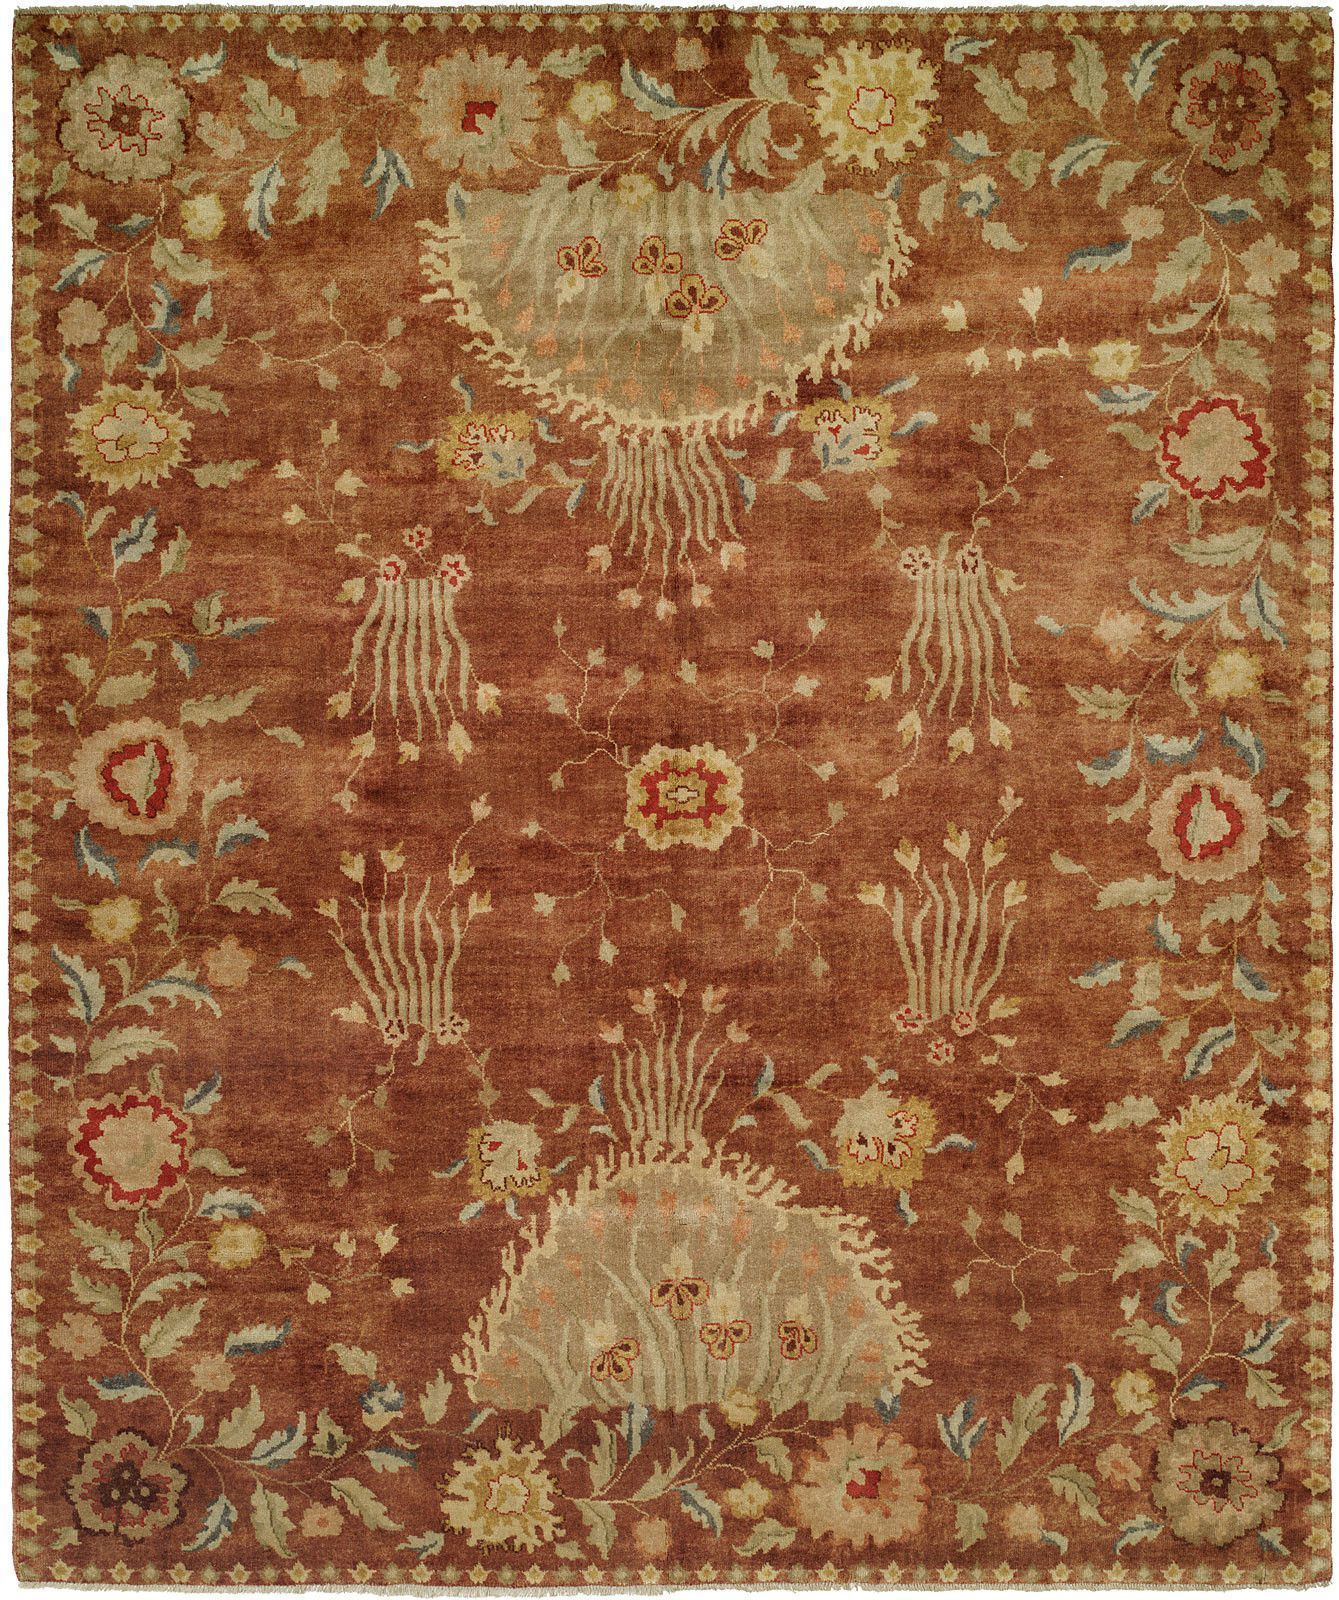 Dumka Hand Knotted Rosewoodyellow Area Rug